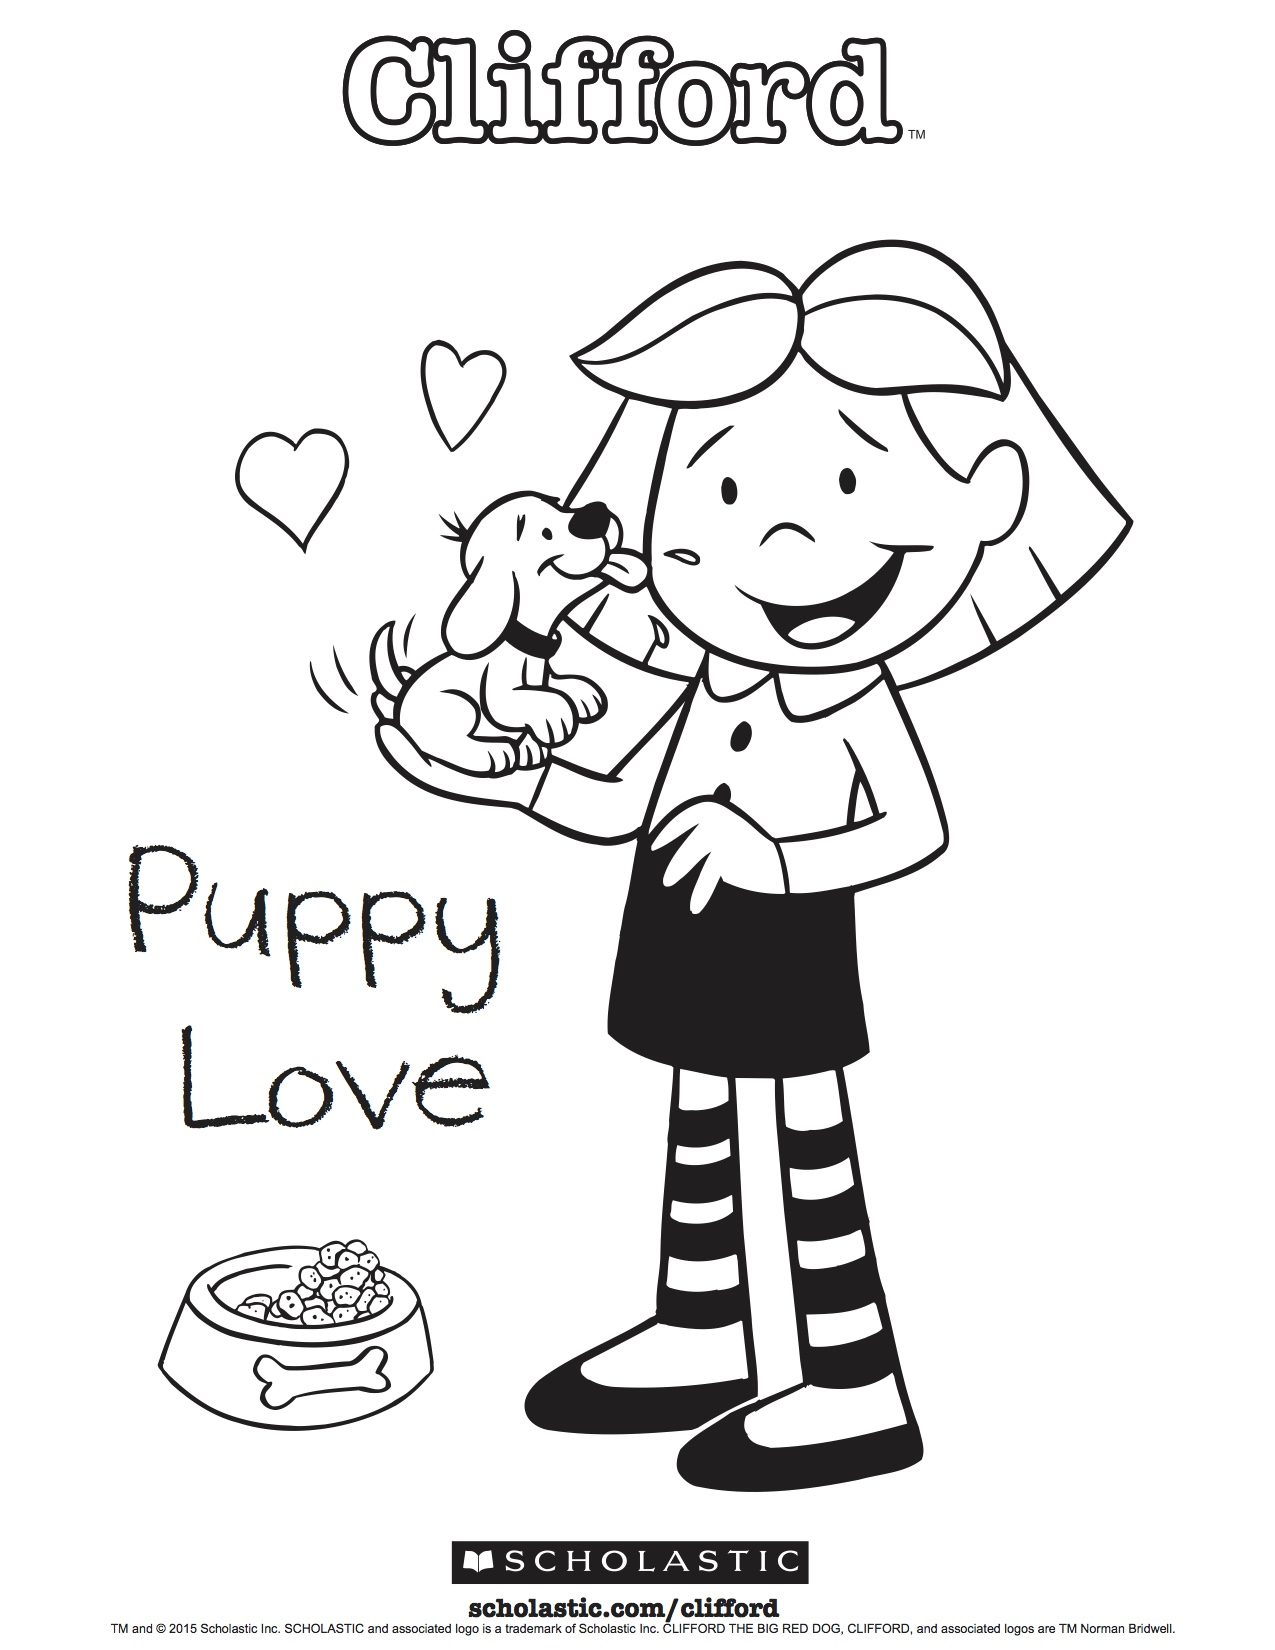 Clifford\'s Puppy Love Coloring Sheet | Scholastic | Parents